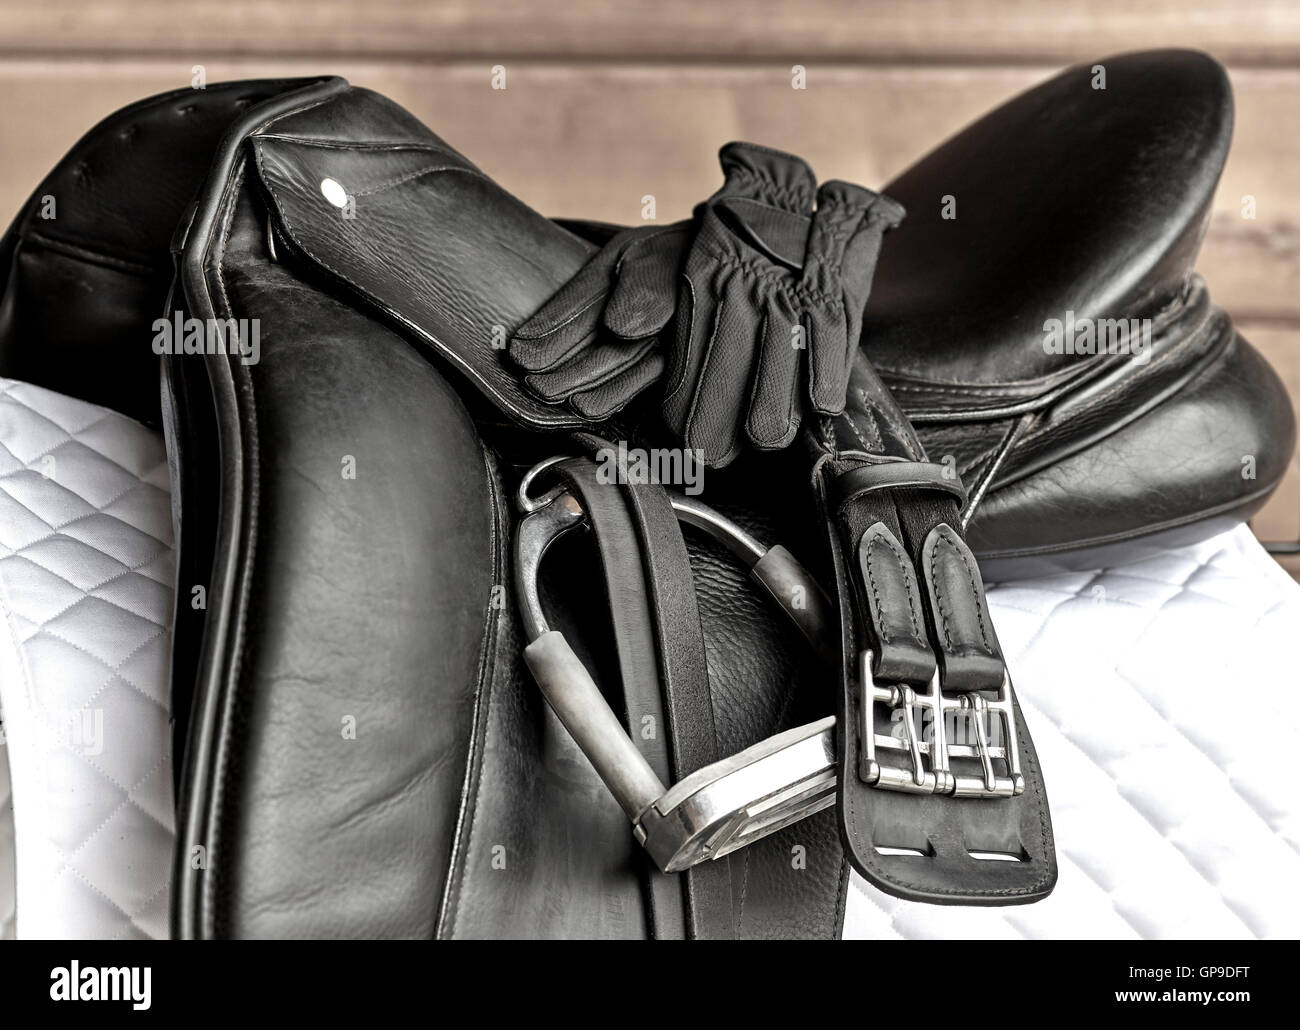 Used black dressage horse riding saddle with girth, stirrup and riding gloves on white saddle pad - Stock Image